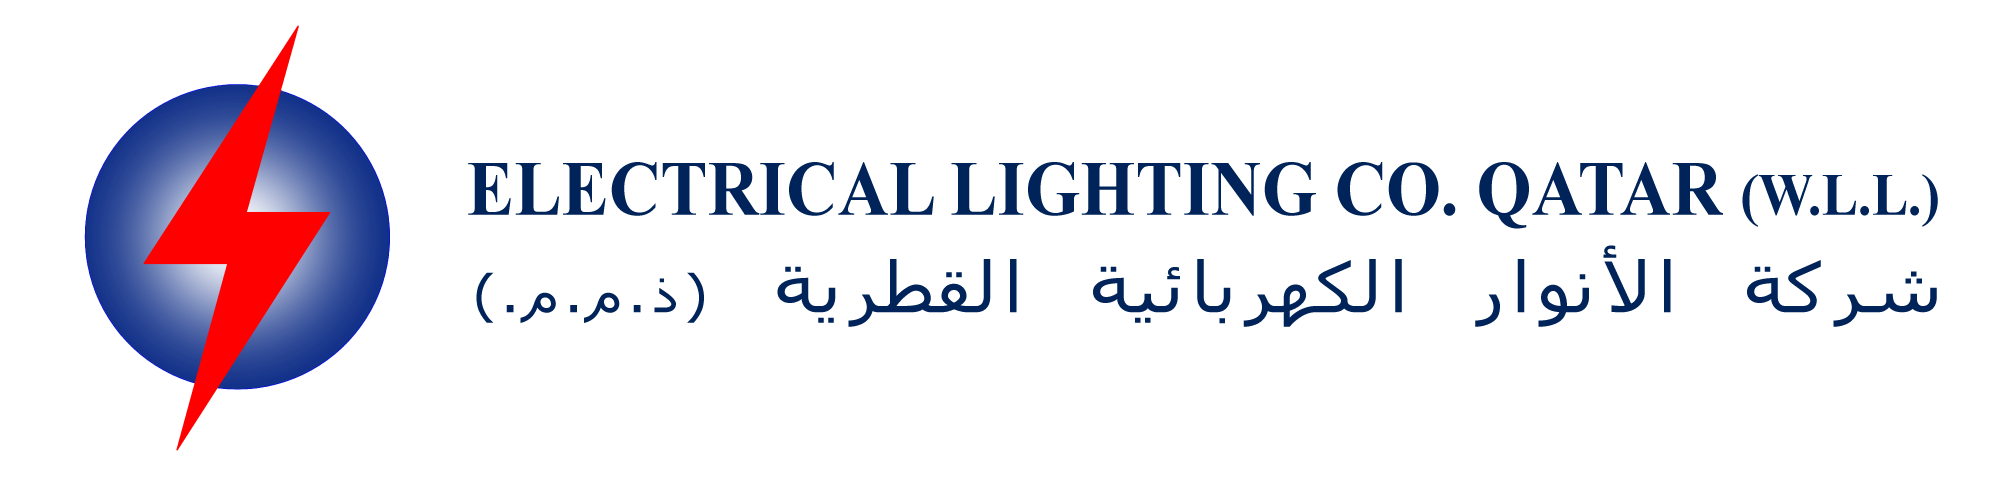 Electrical Lighting Co. Qatar W.L.L.